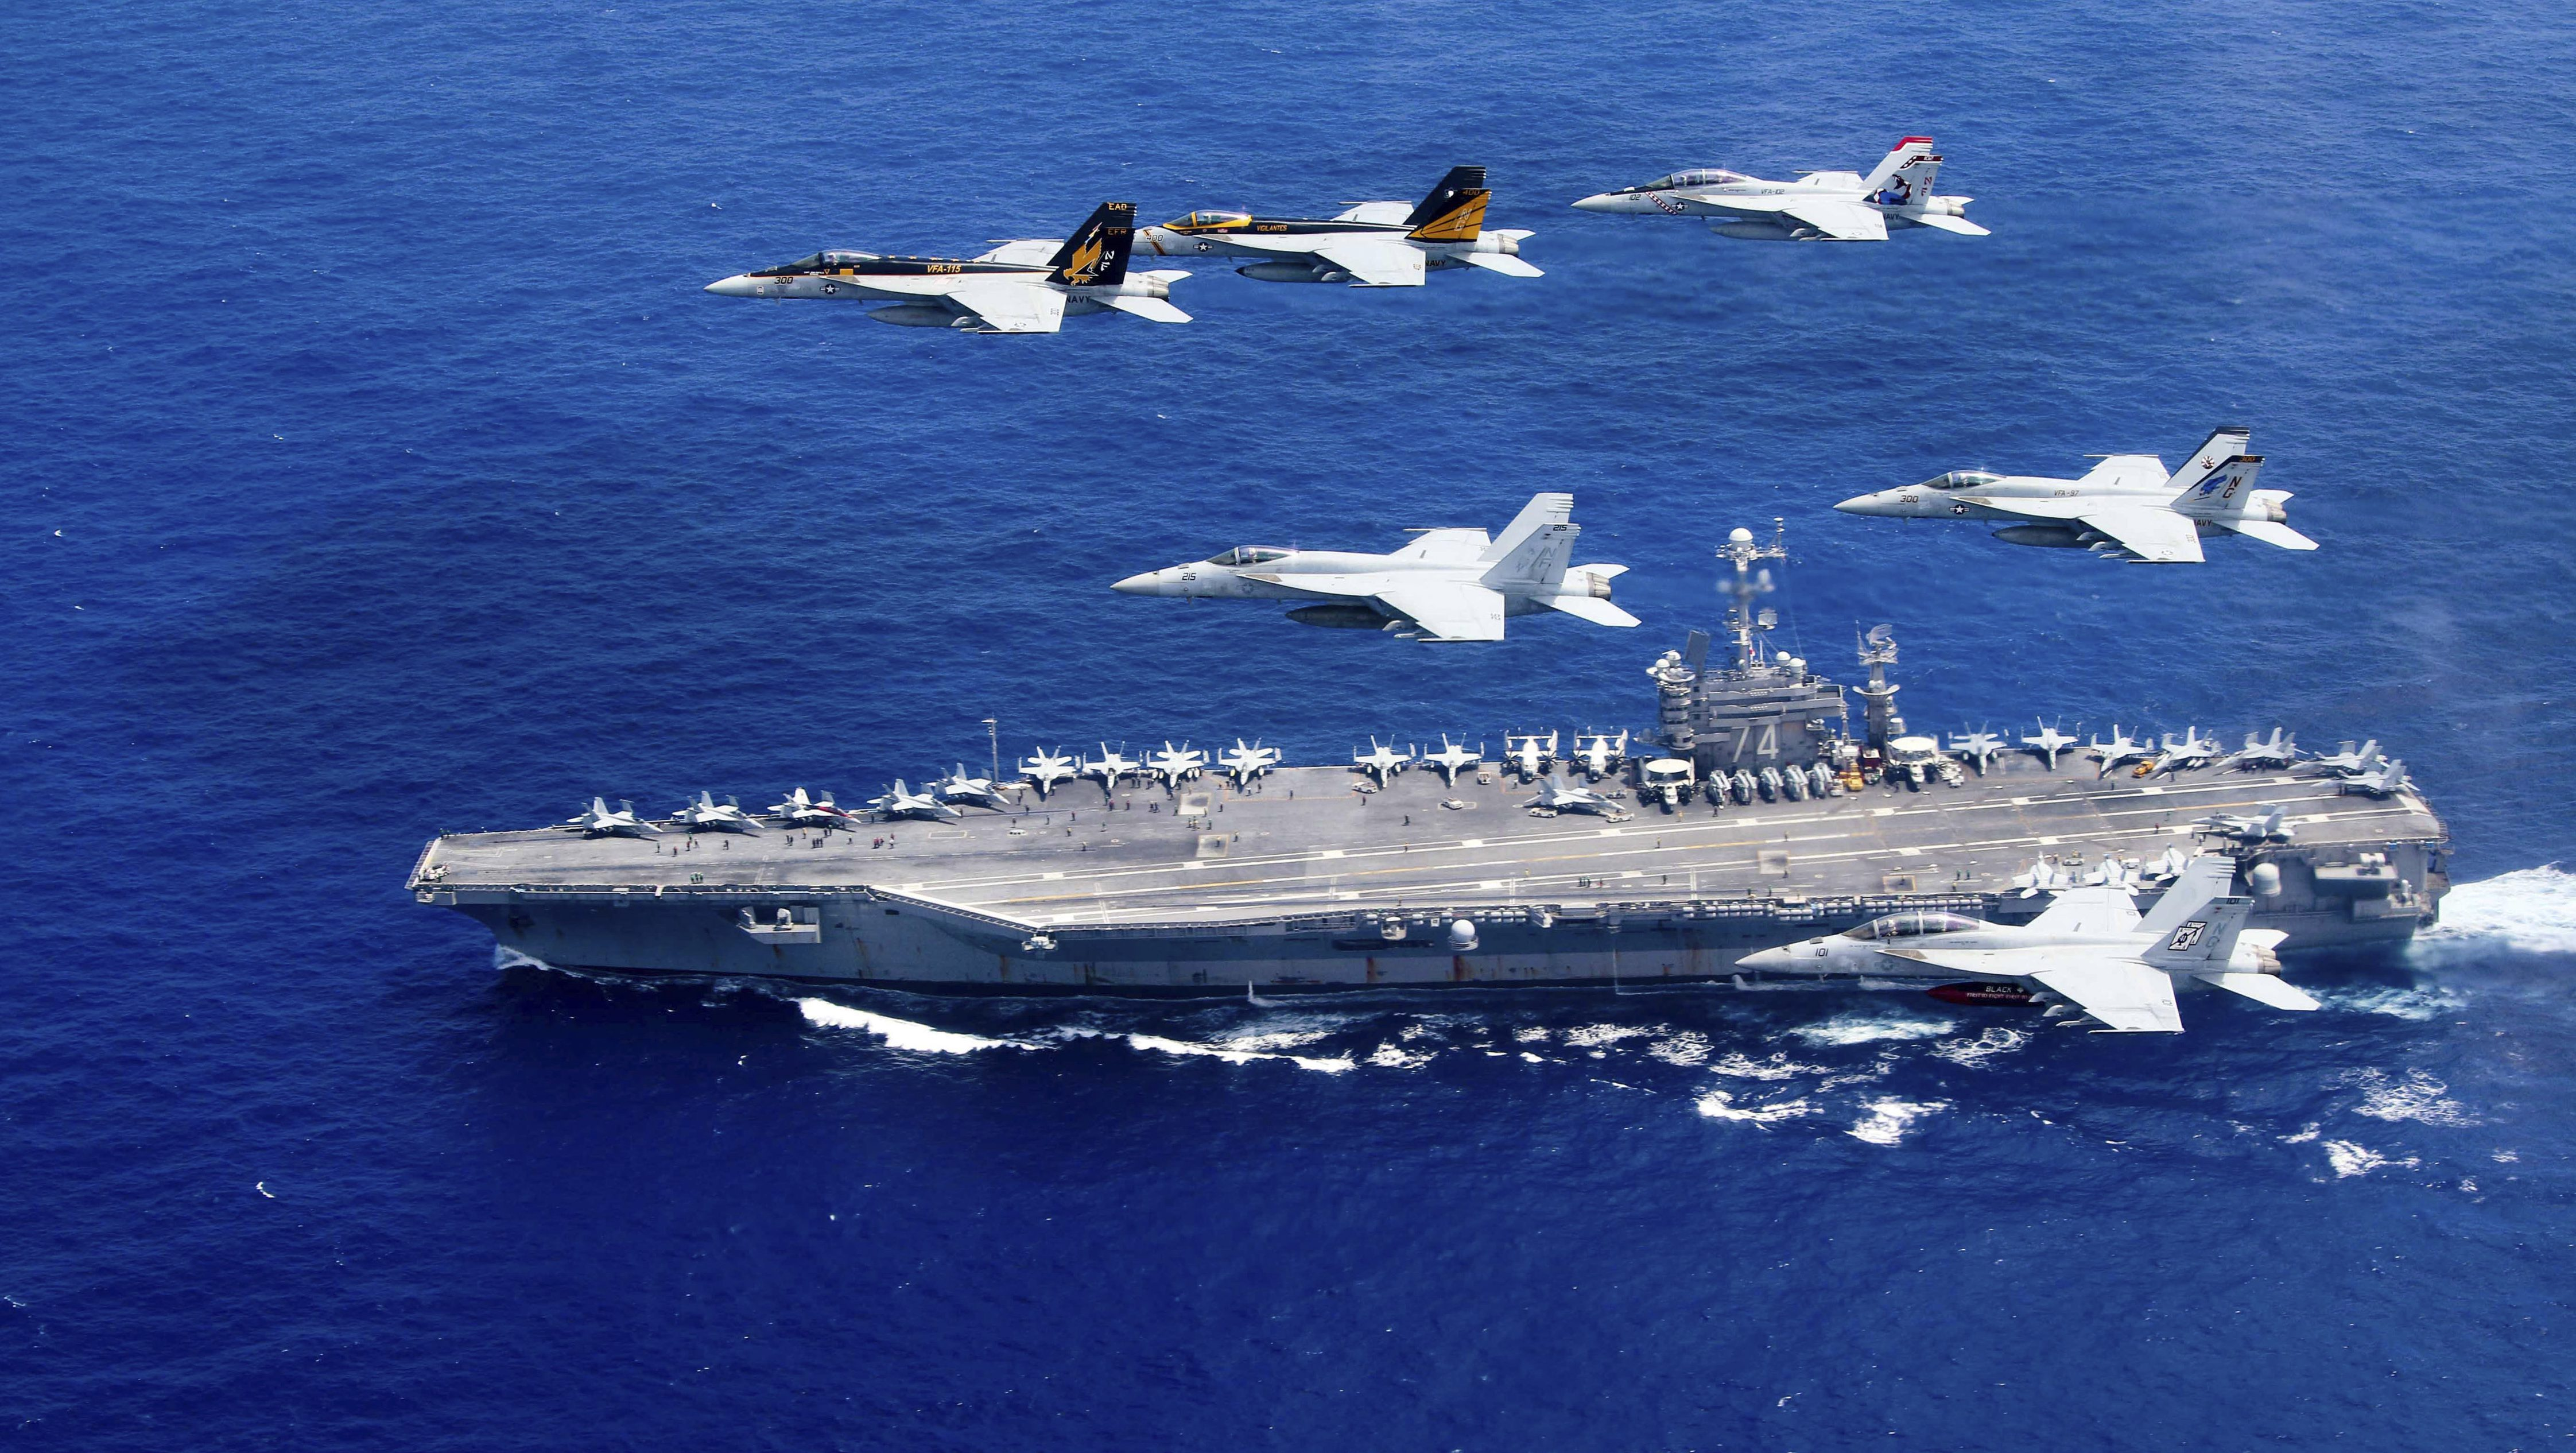 A combined formation of aircraft from Carrier Air Wing (CVW) 5 and Carrier Air Wing (CVW) 9 pass in formation above the Nimitz-class aircraft carrier USS John C. Stennis (CVN 74) in the Philippine Sea on June 18, 2016.     Courtesy Steve Smith/U.S. Navy/Handout via REUTERS  ATTENTION EDITORS - THIS IMAGE WAS PROVIDED BY A THIRD PARTY. EDITORIAL USE ONLY - RTX2GYG6